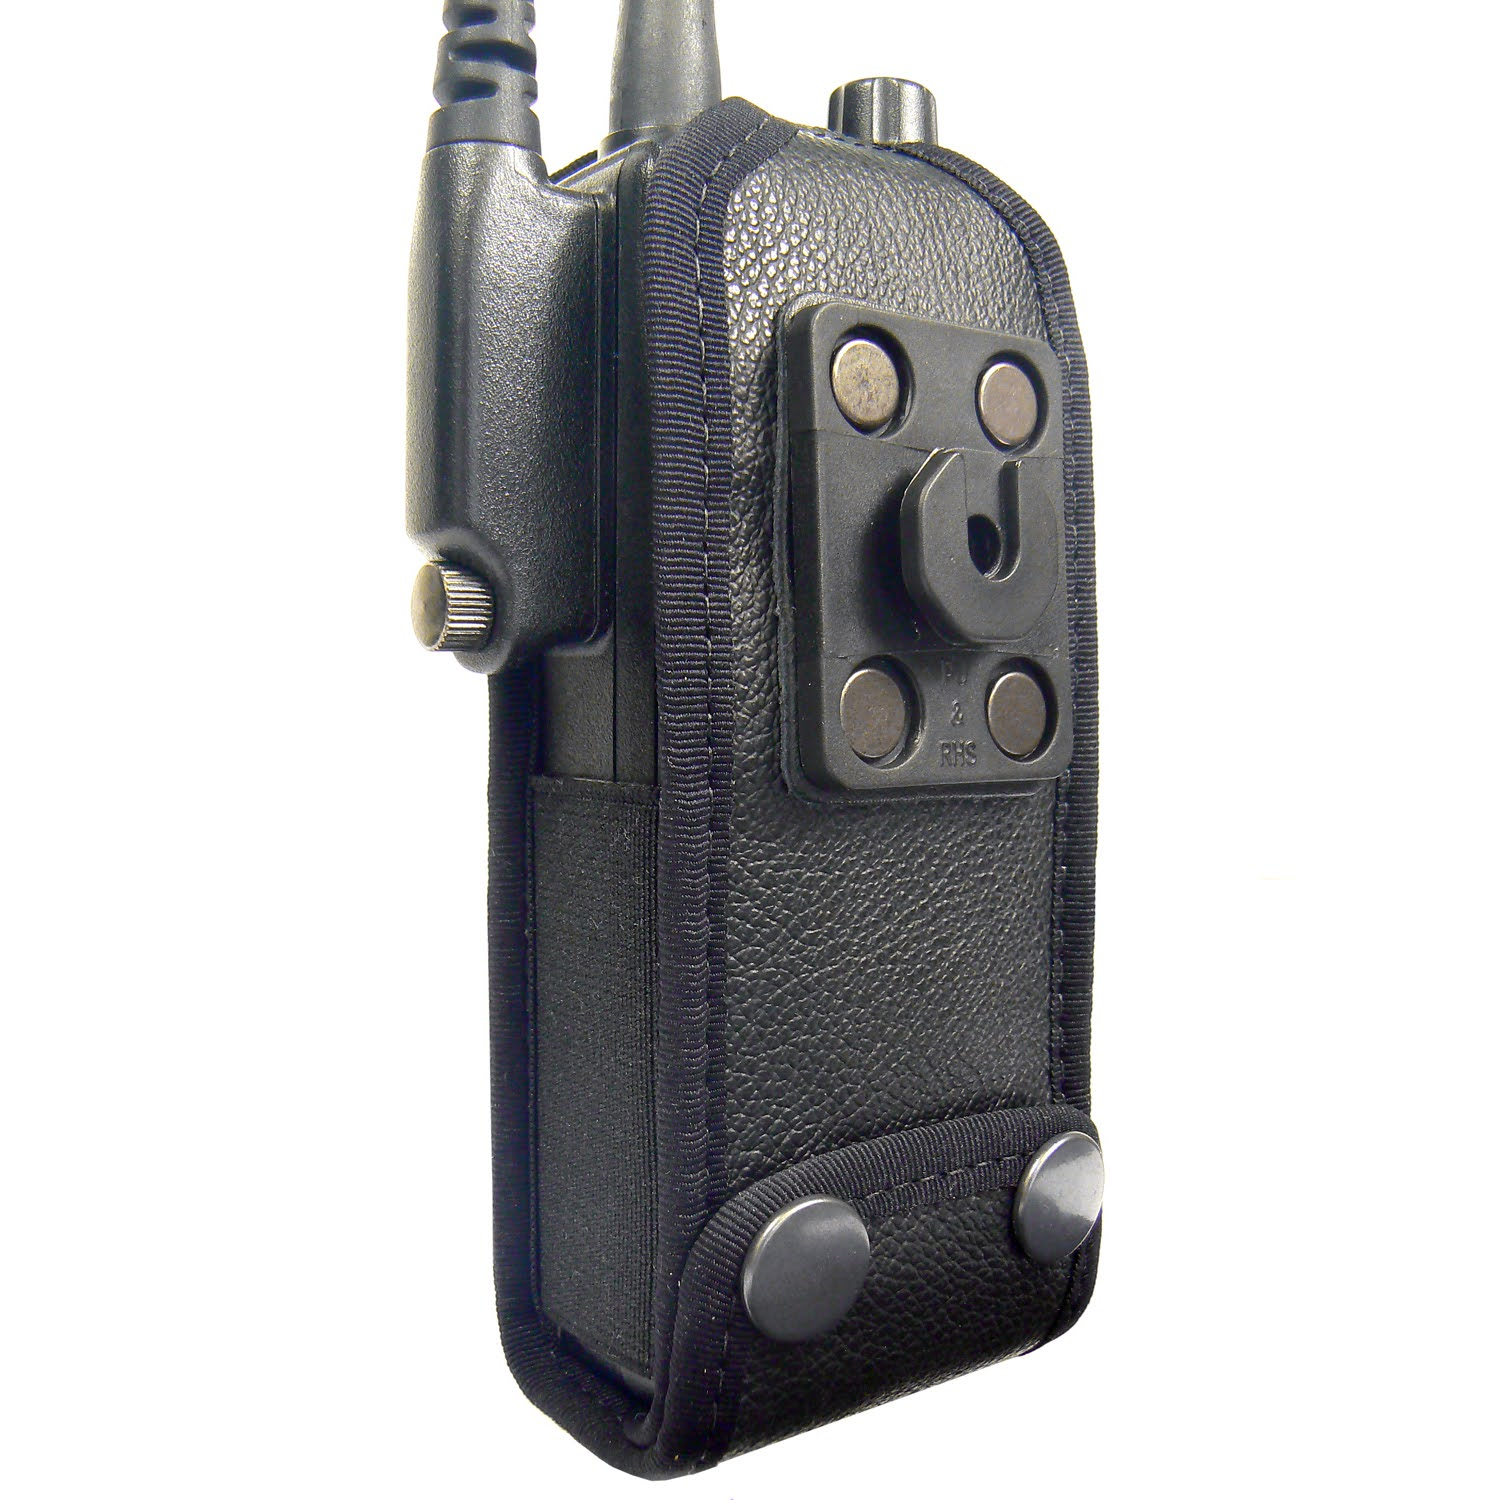 Sepura STP8000 Tetra leather radio case with Click-On